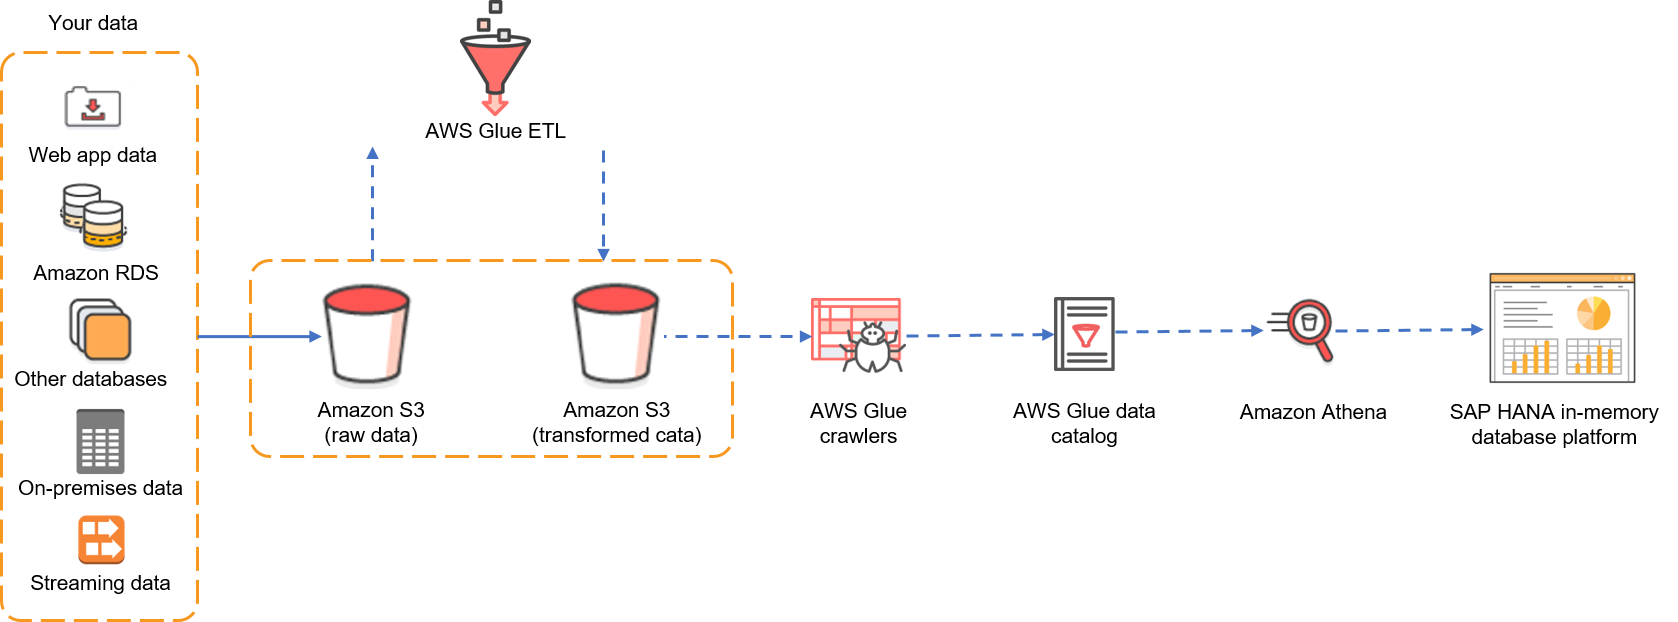 Run Federated Queries To An Aws Data Lake With Sap Hana